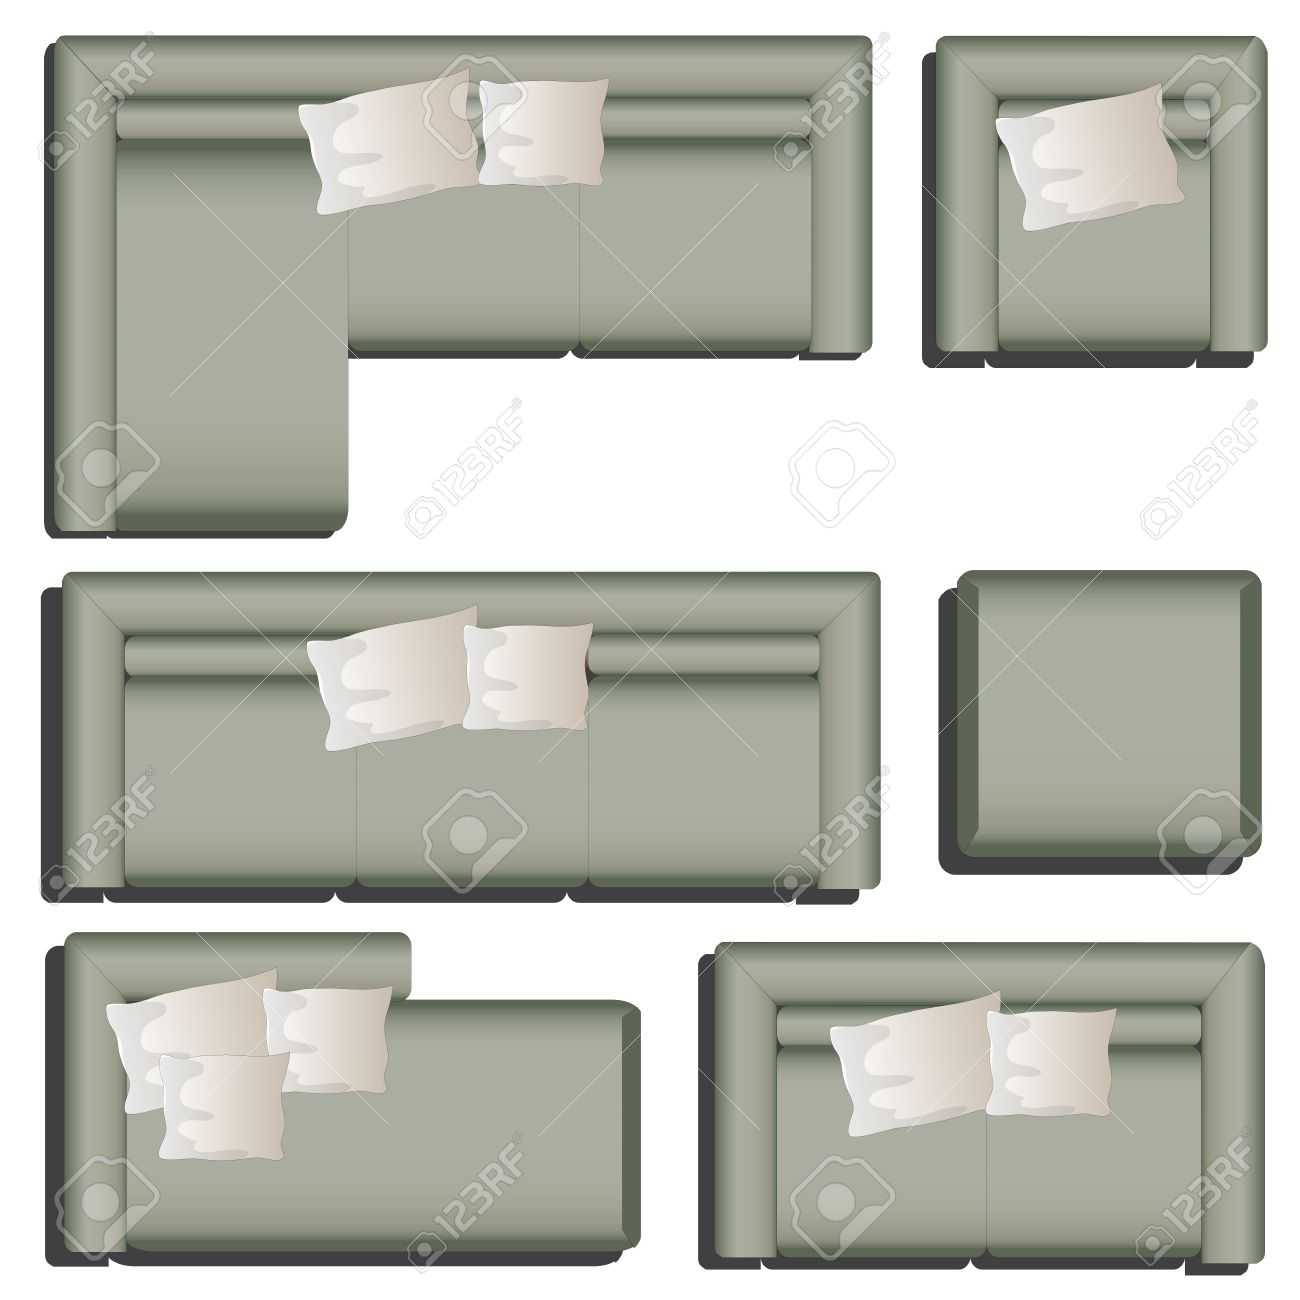 Furniture Top View Set 38 For Interior Vector Illustration